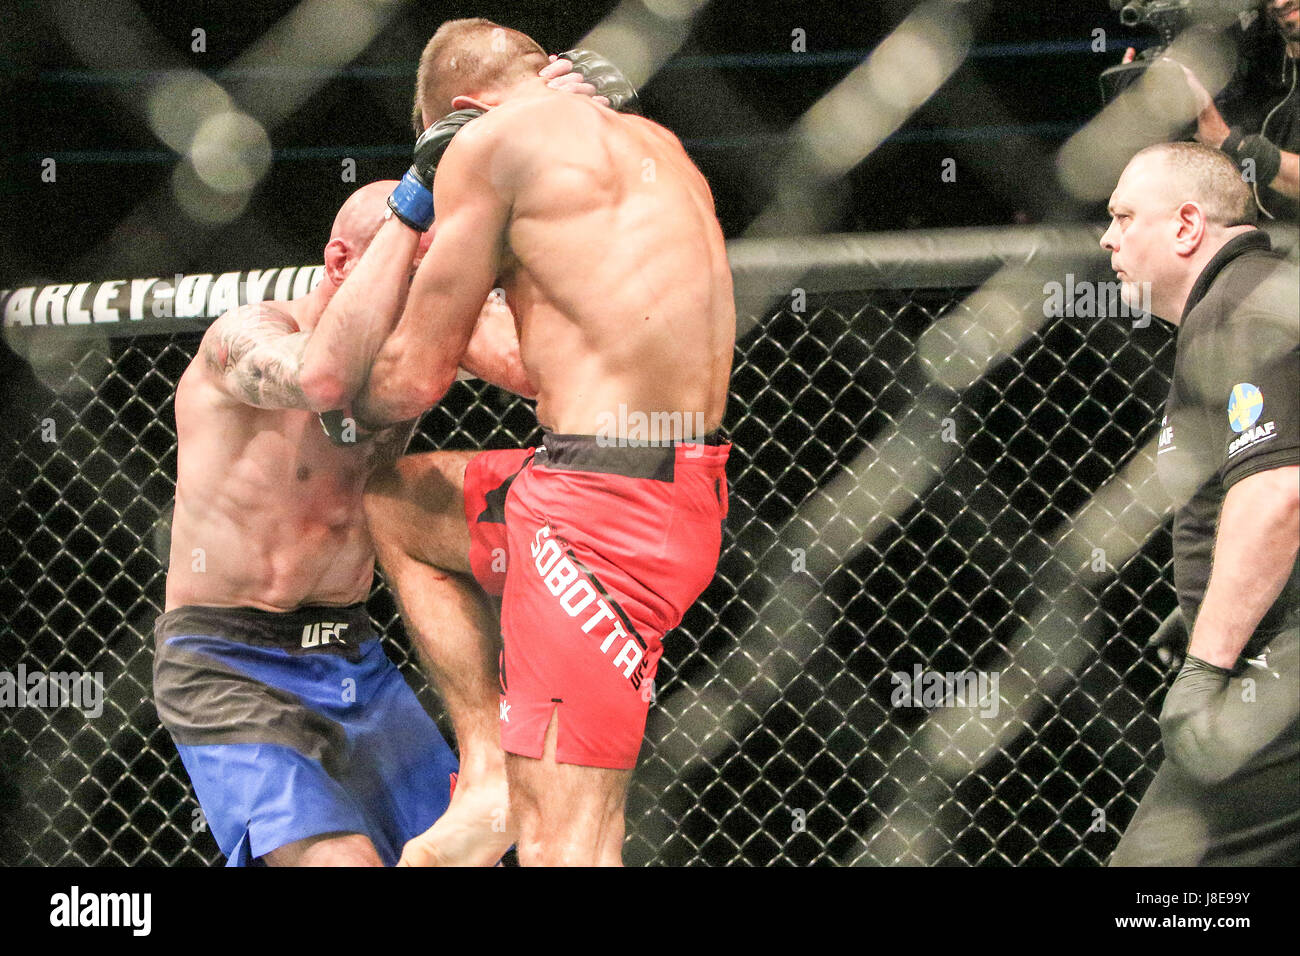 Ericsson Globe , Stockholm, Sweden . 28 May 2017. Peter Sobotta defeats Ben Saunders via TKO during UFC Fight  Night Stock Photo